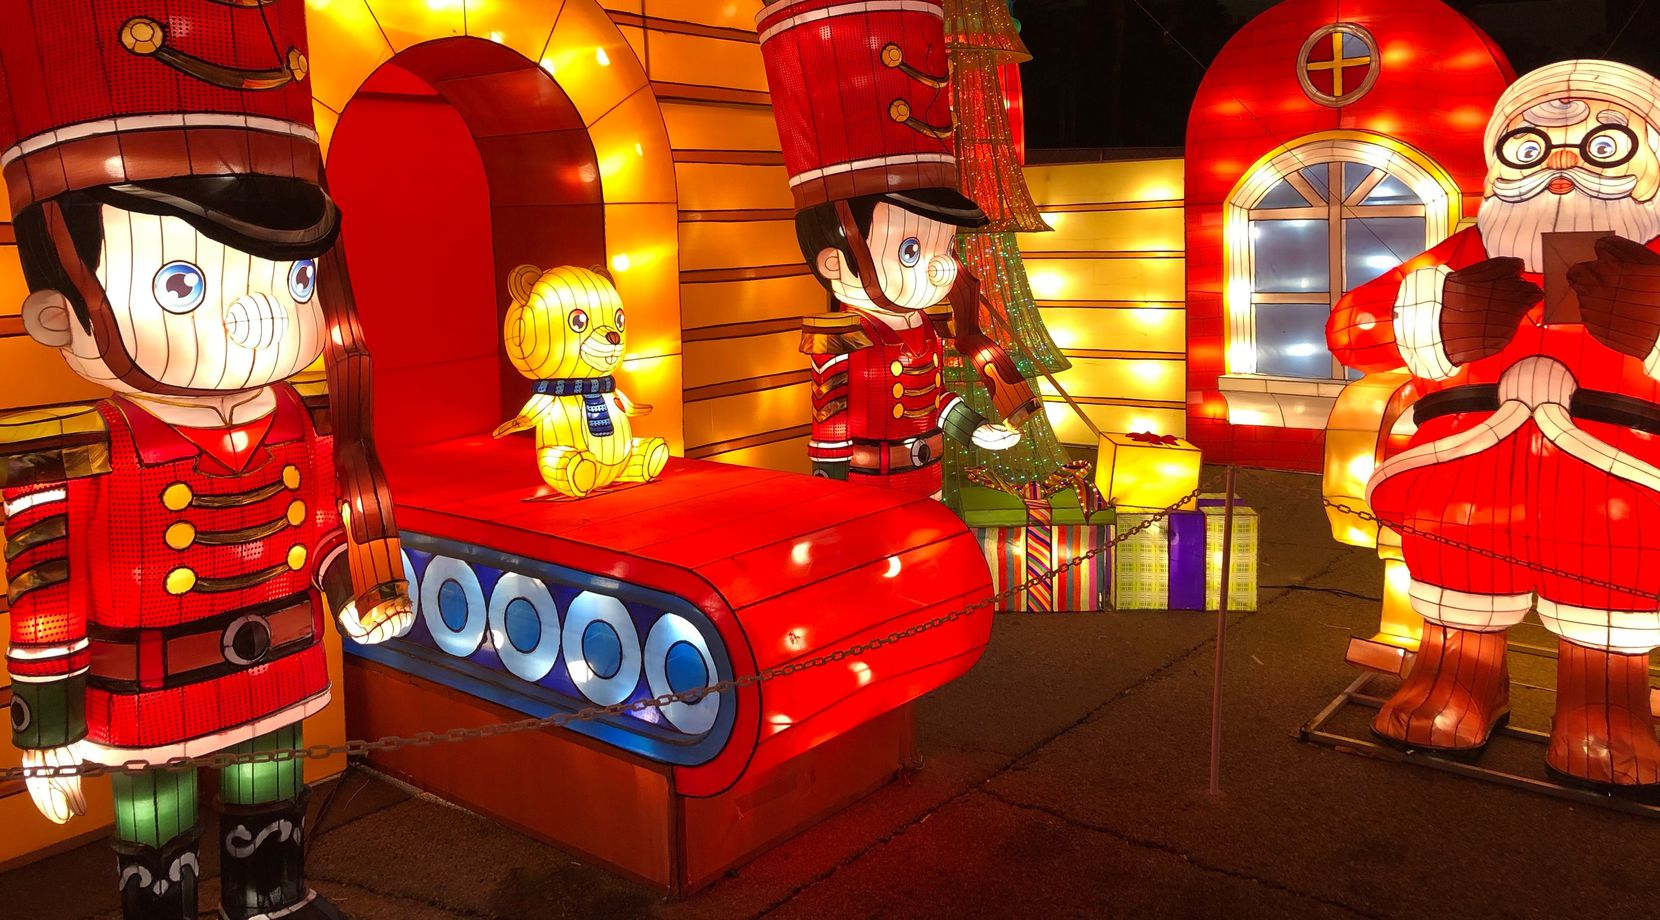 """""""Yuletide Bright"""" is a new outdoor walk-through exhibit at the Gaylord Texan this year, featuring holiday-themed Christmas lanterns and lights."""